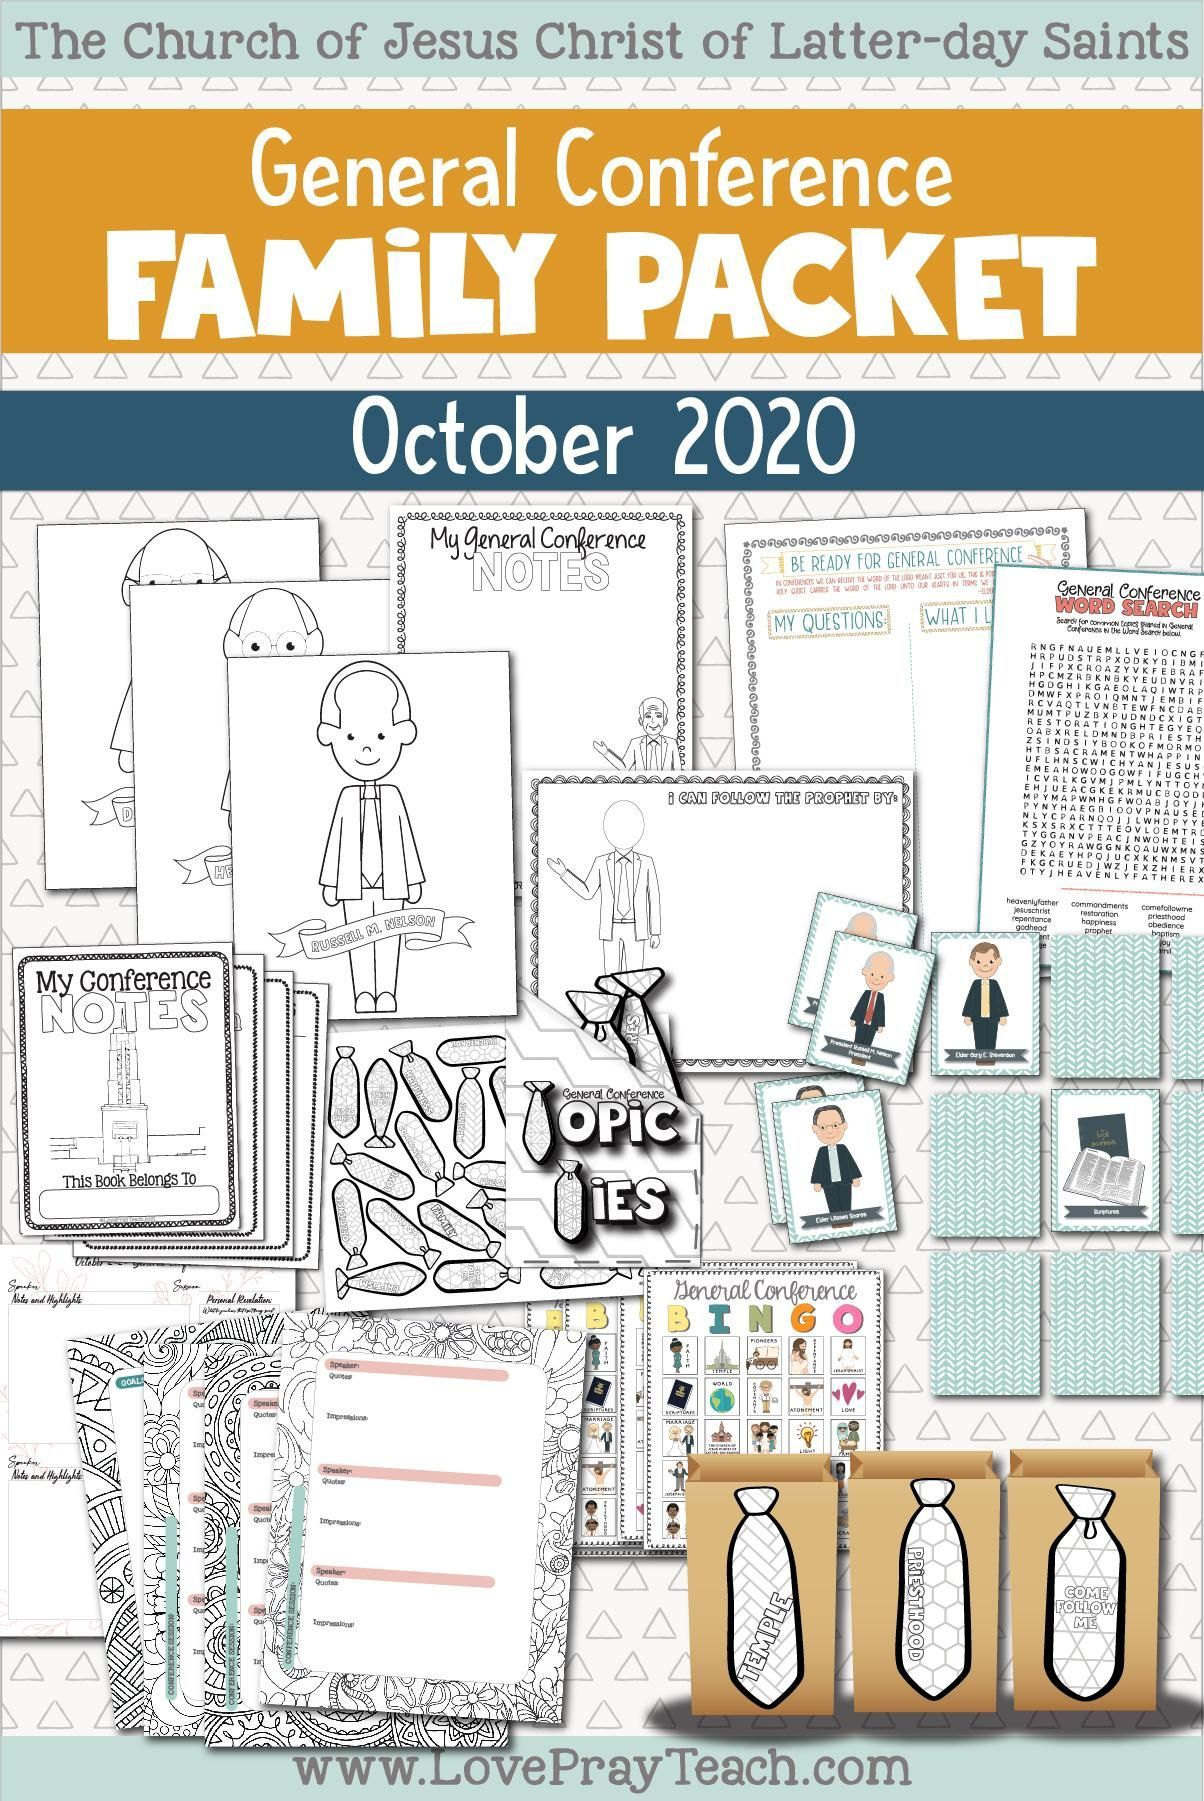 October 2020 General Conference Family Packet In 2020 General Conference Activities General Conference Activities For Kids General Conference Packets